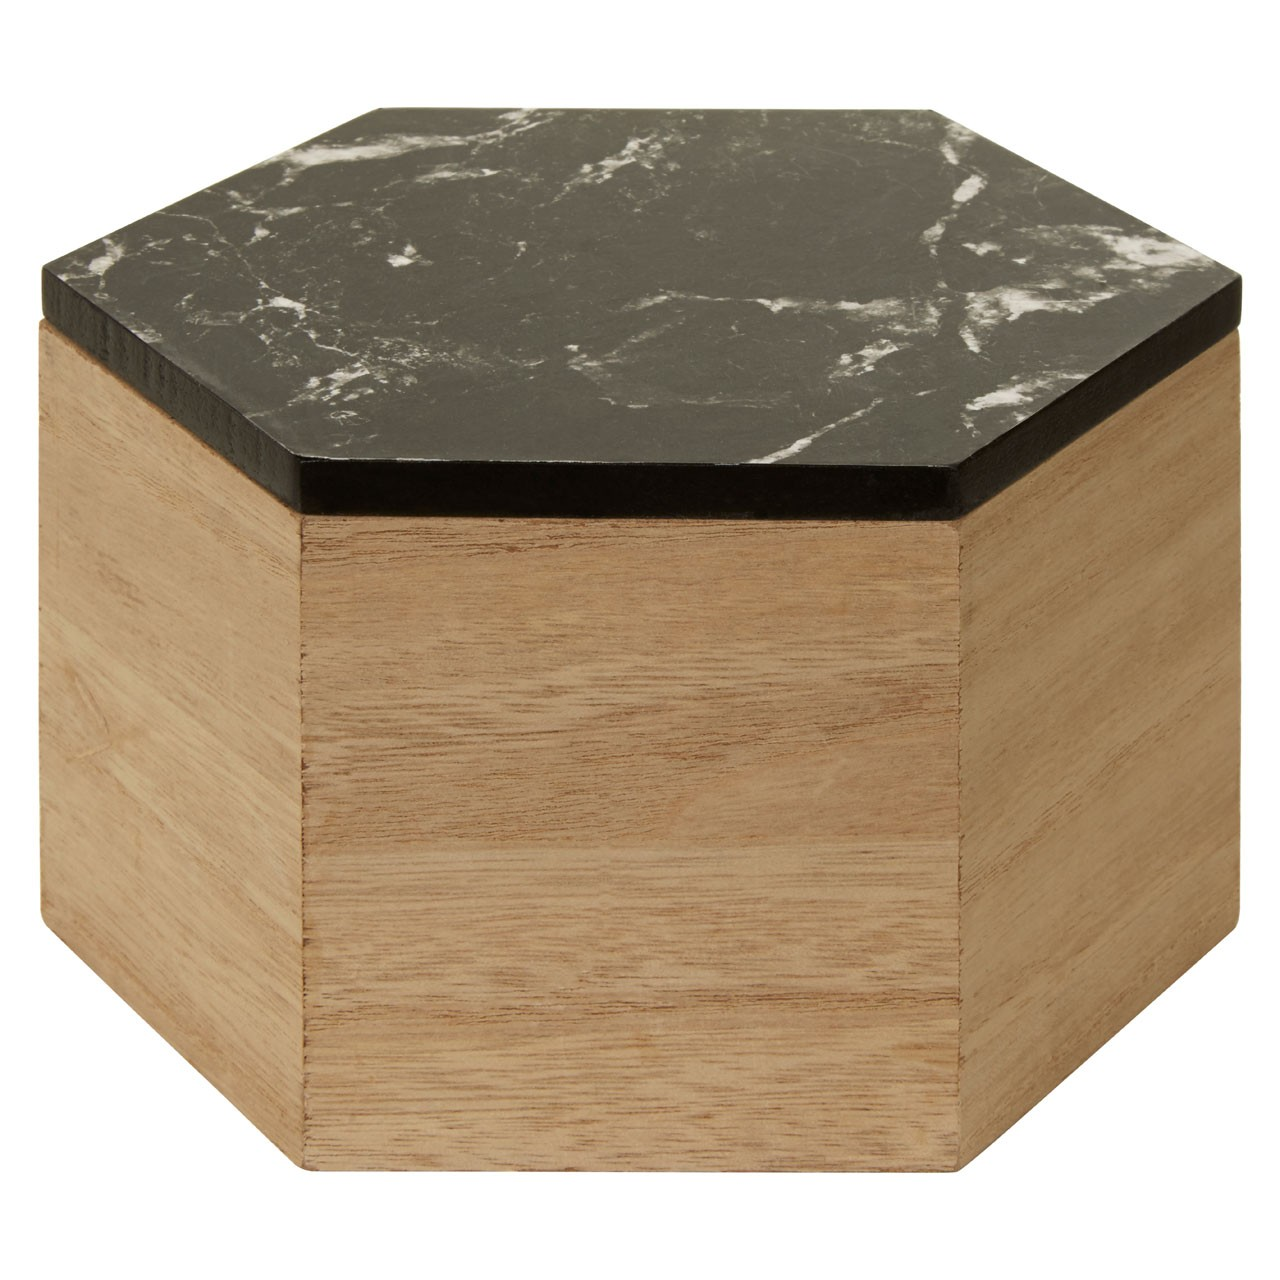 Mimo Black Marble Effect Hexagonal Trinket Box